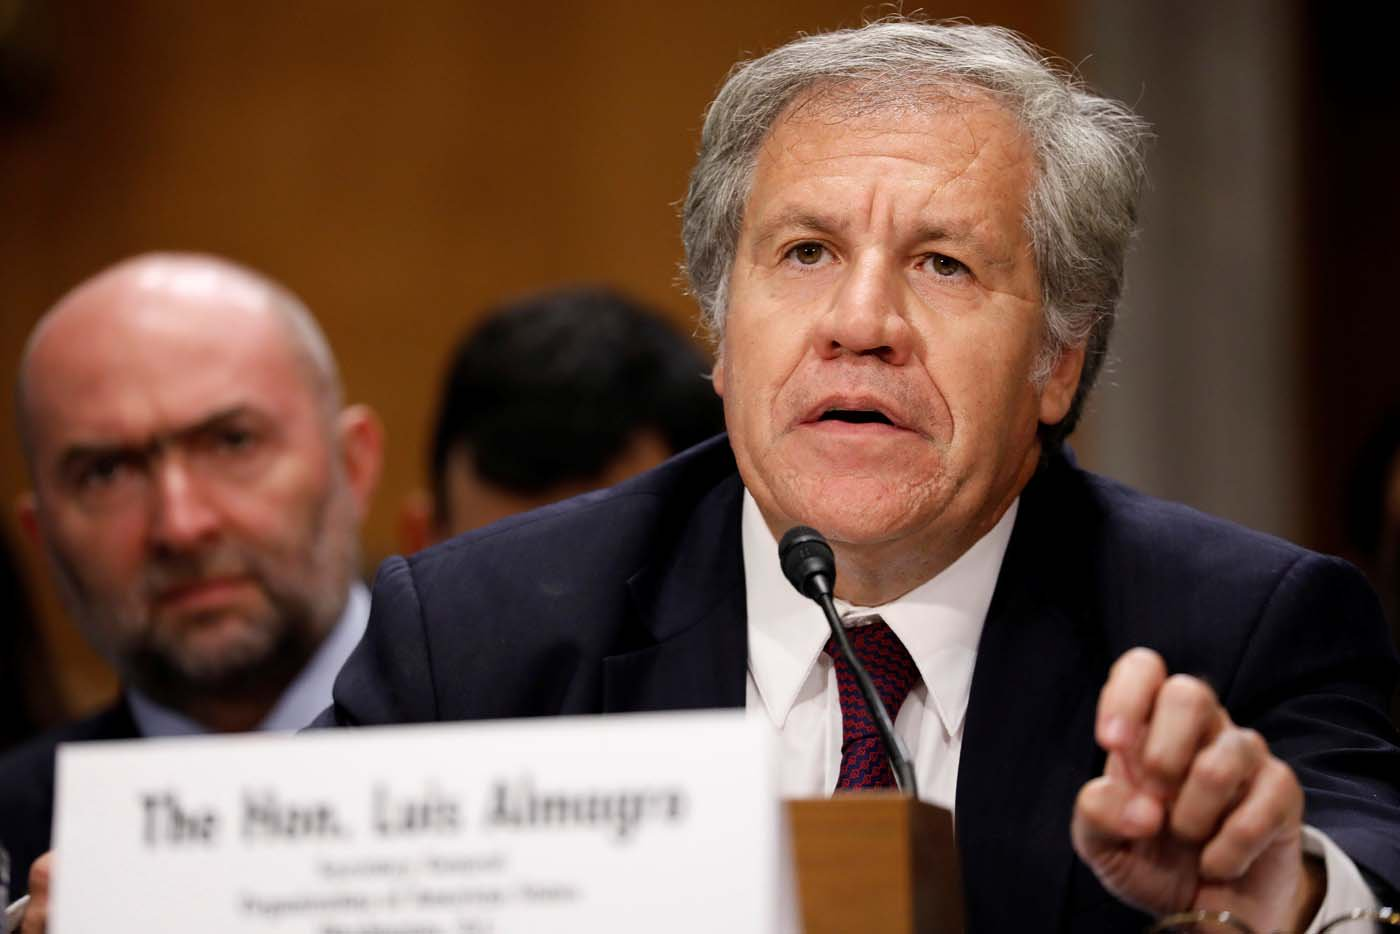 Organization of American States President Luis Almagro testifies before a Senate Foreign Relations Subcommittee on the ongoing crisis in Venezuela on Capitol Hill in Washington, U.S., July 19, 2017. REUTERS/Aaron P. Bernstein